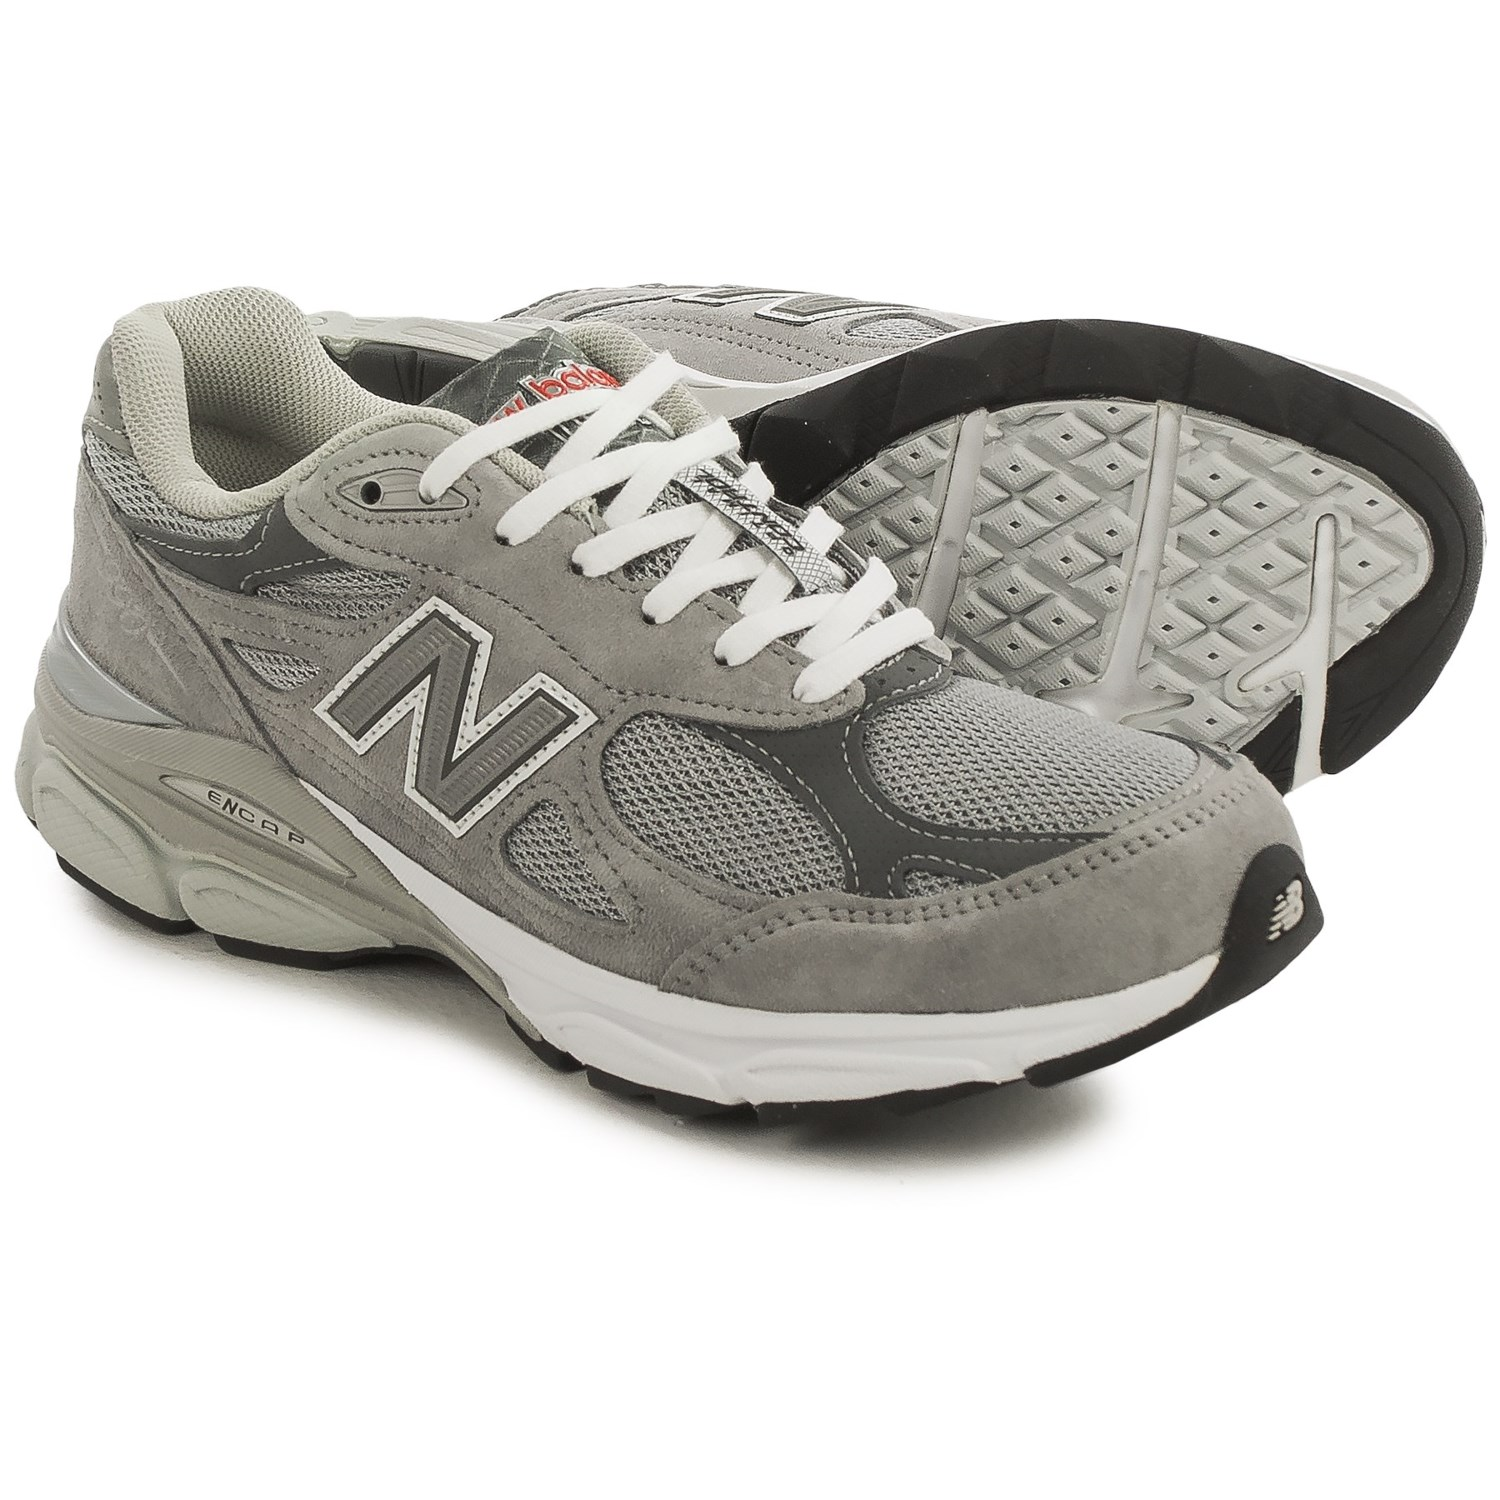 new balance shoes 990v3